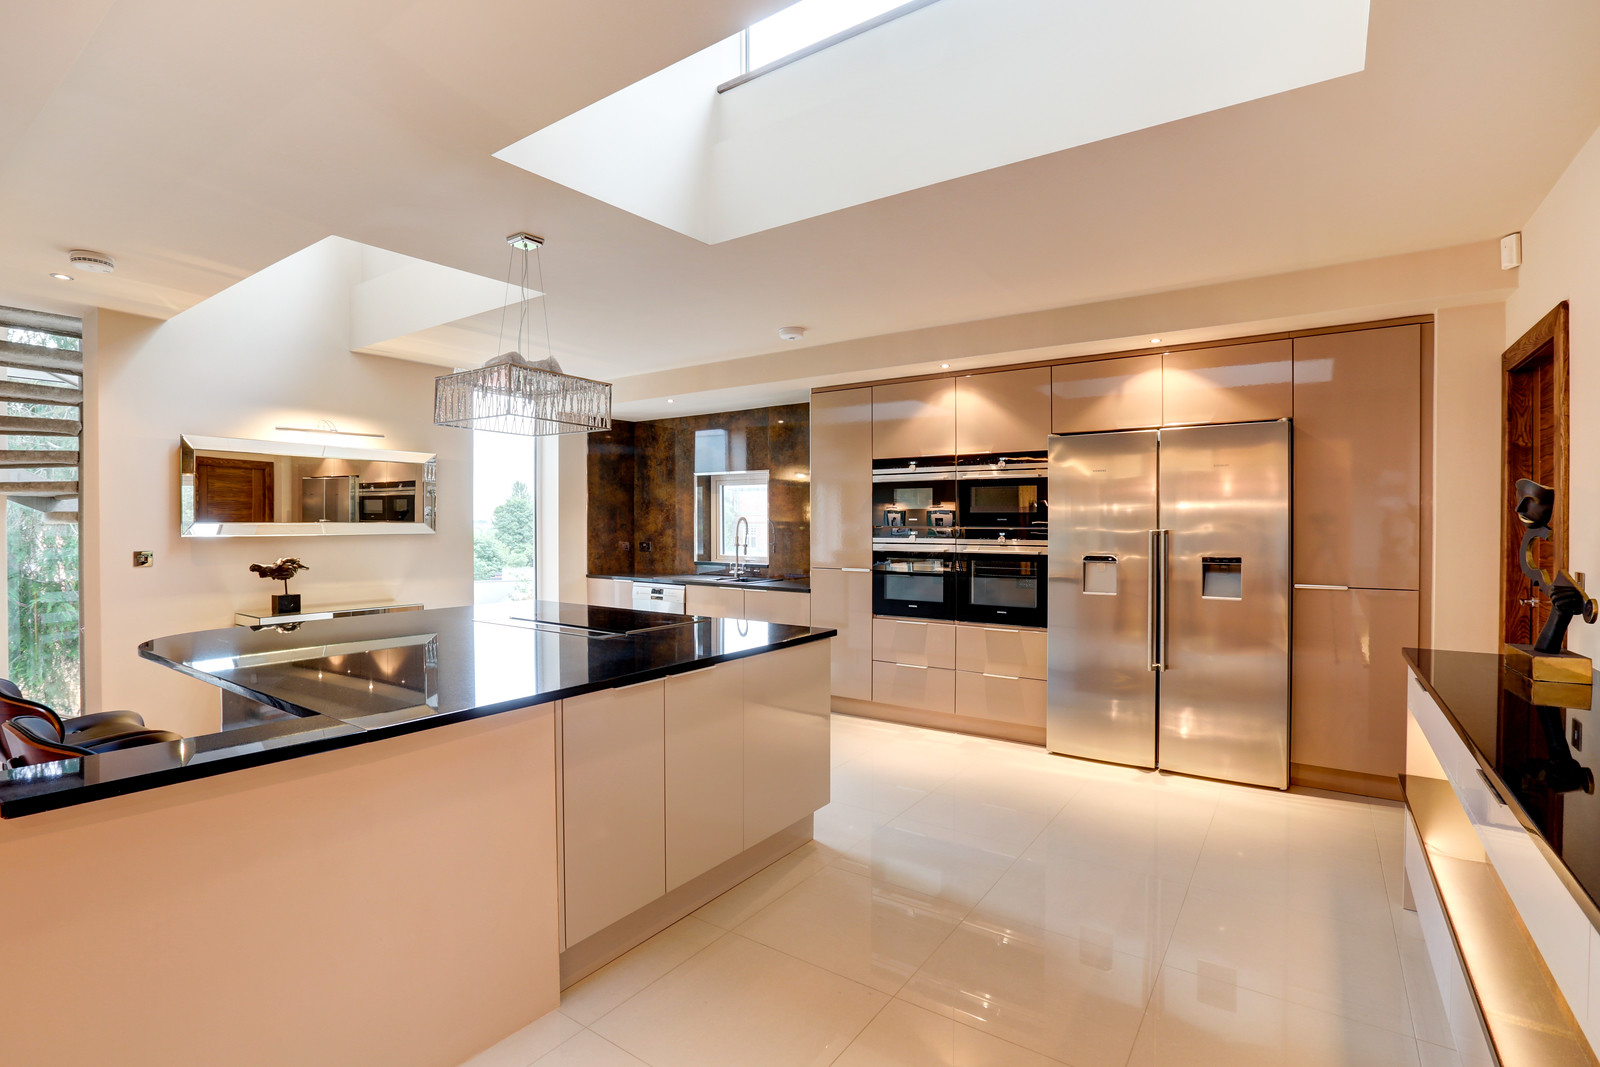 Designer kitchen, Nottingham. The White house with roof lantern by Guy Phoenix